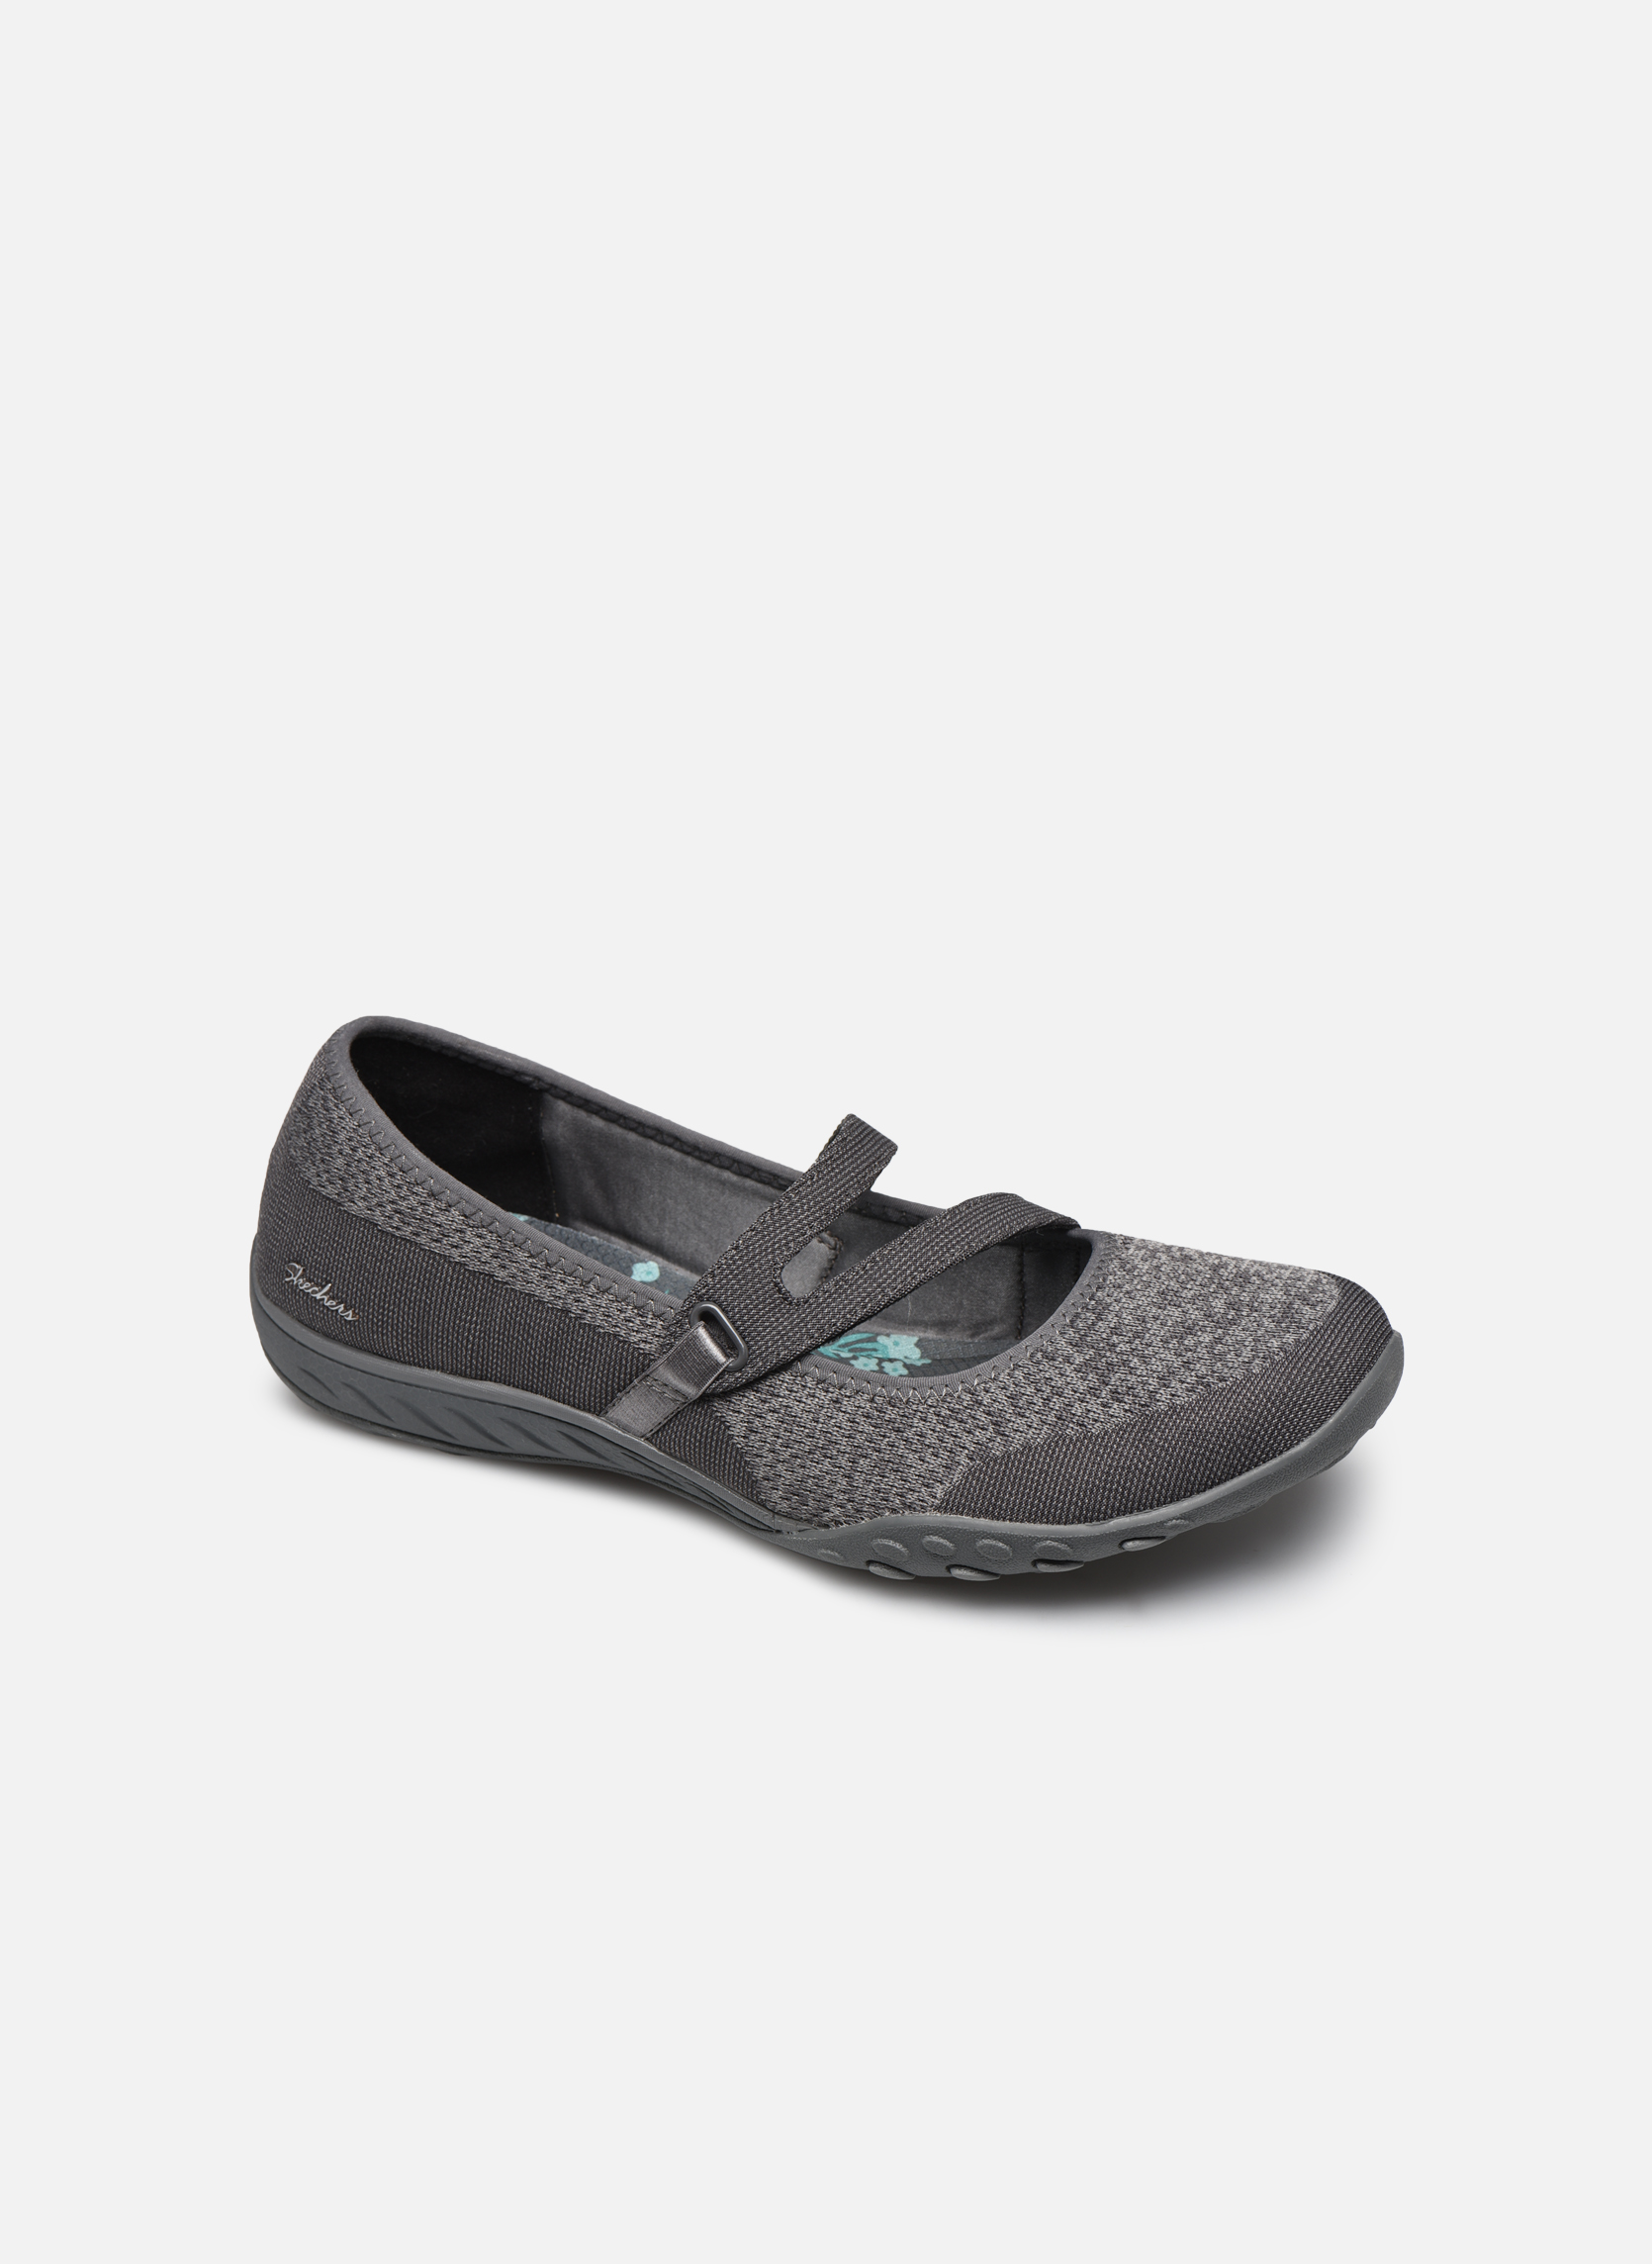 Ballet pumps Skechers Breathe-Easy - Lucky Grey detailed view/ Pair view